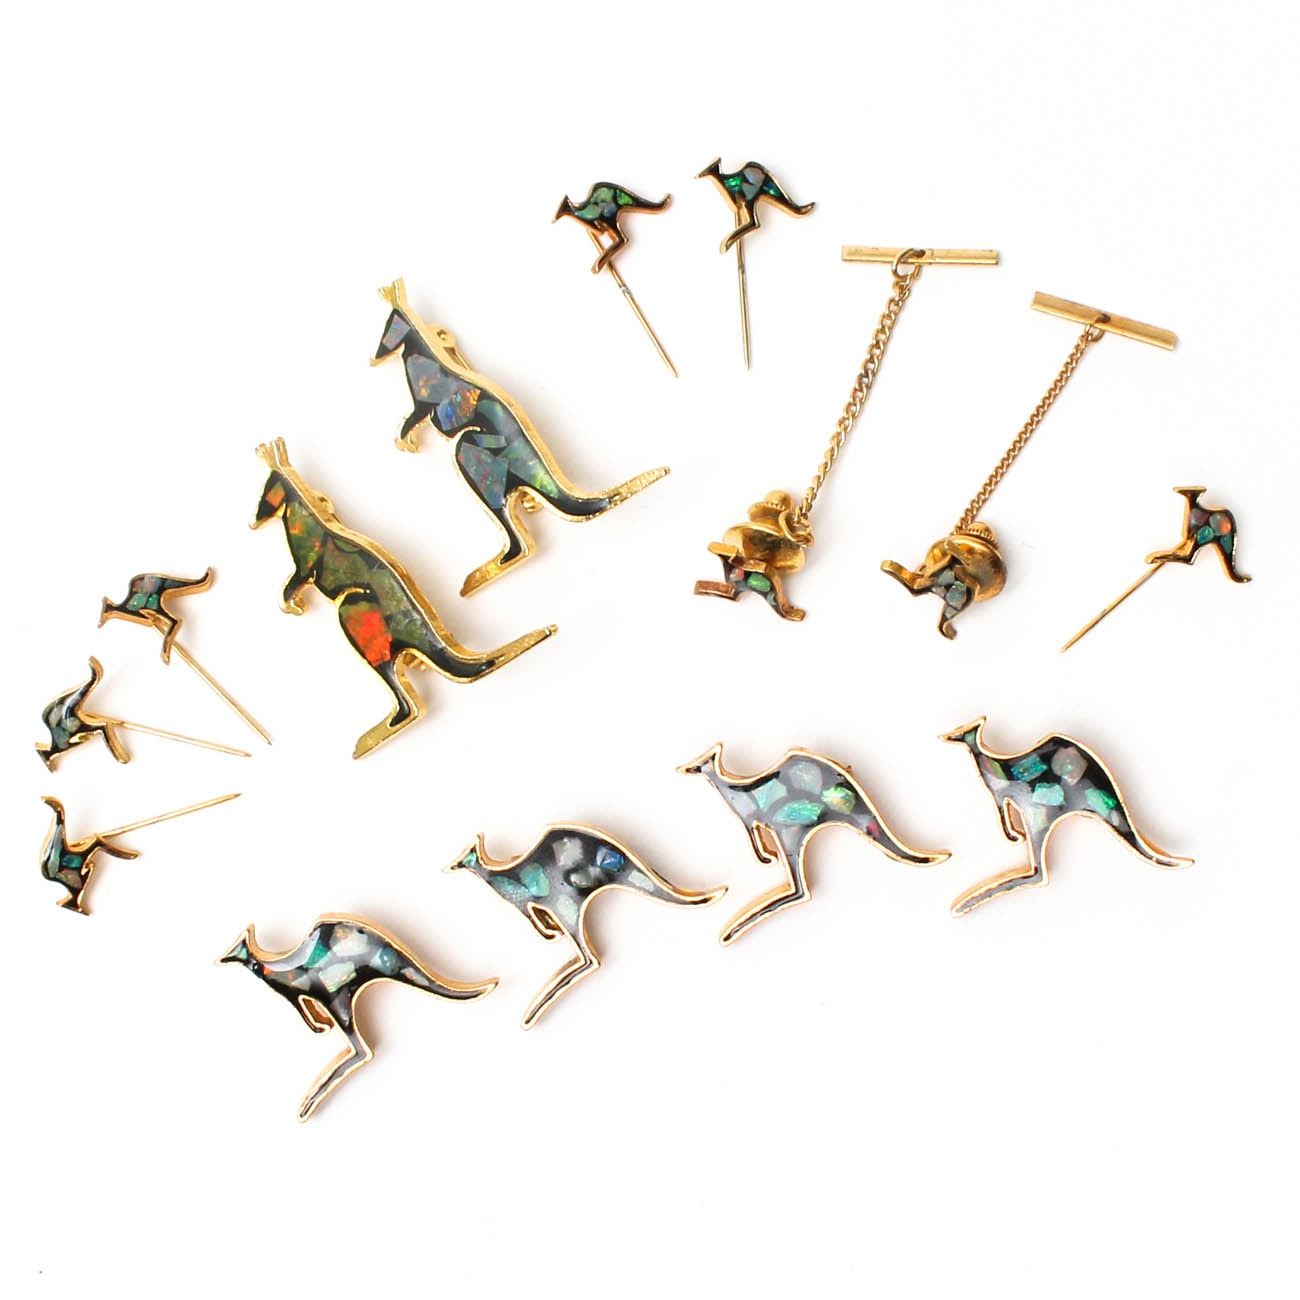 Collection of Kangaroo Brooches, Stick Pins, and Tie Tacks with Opal